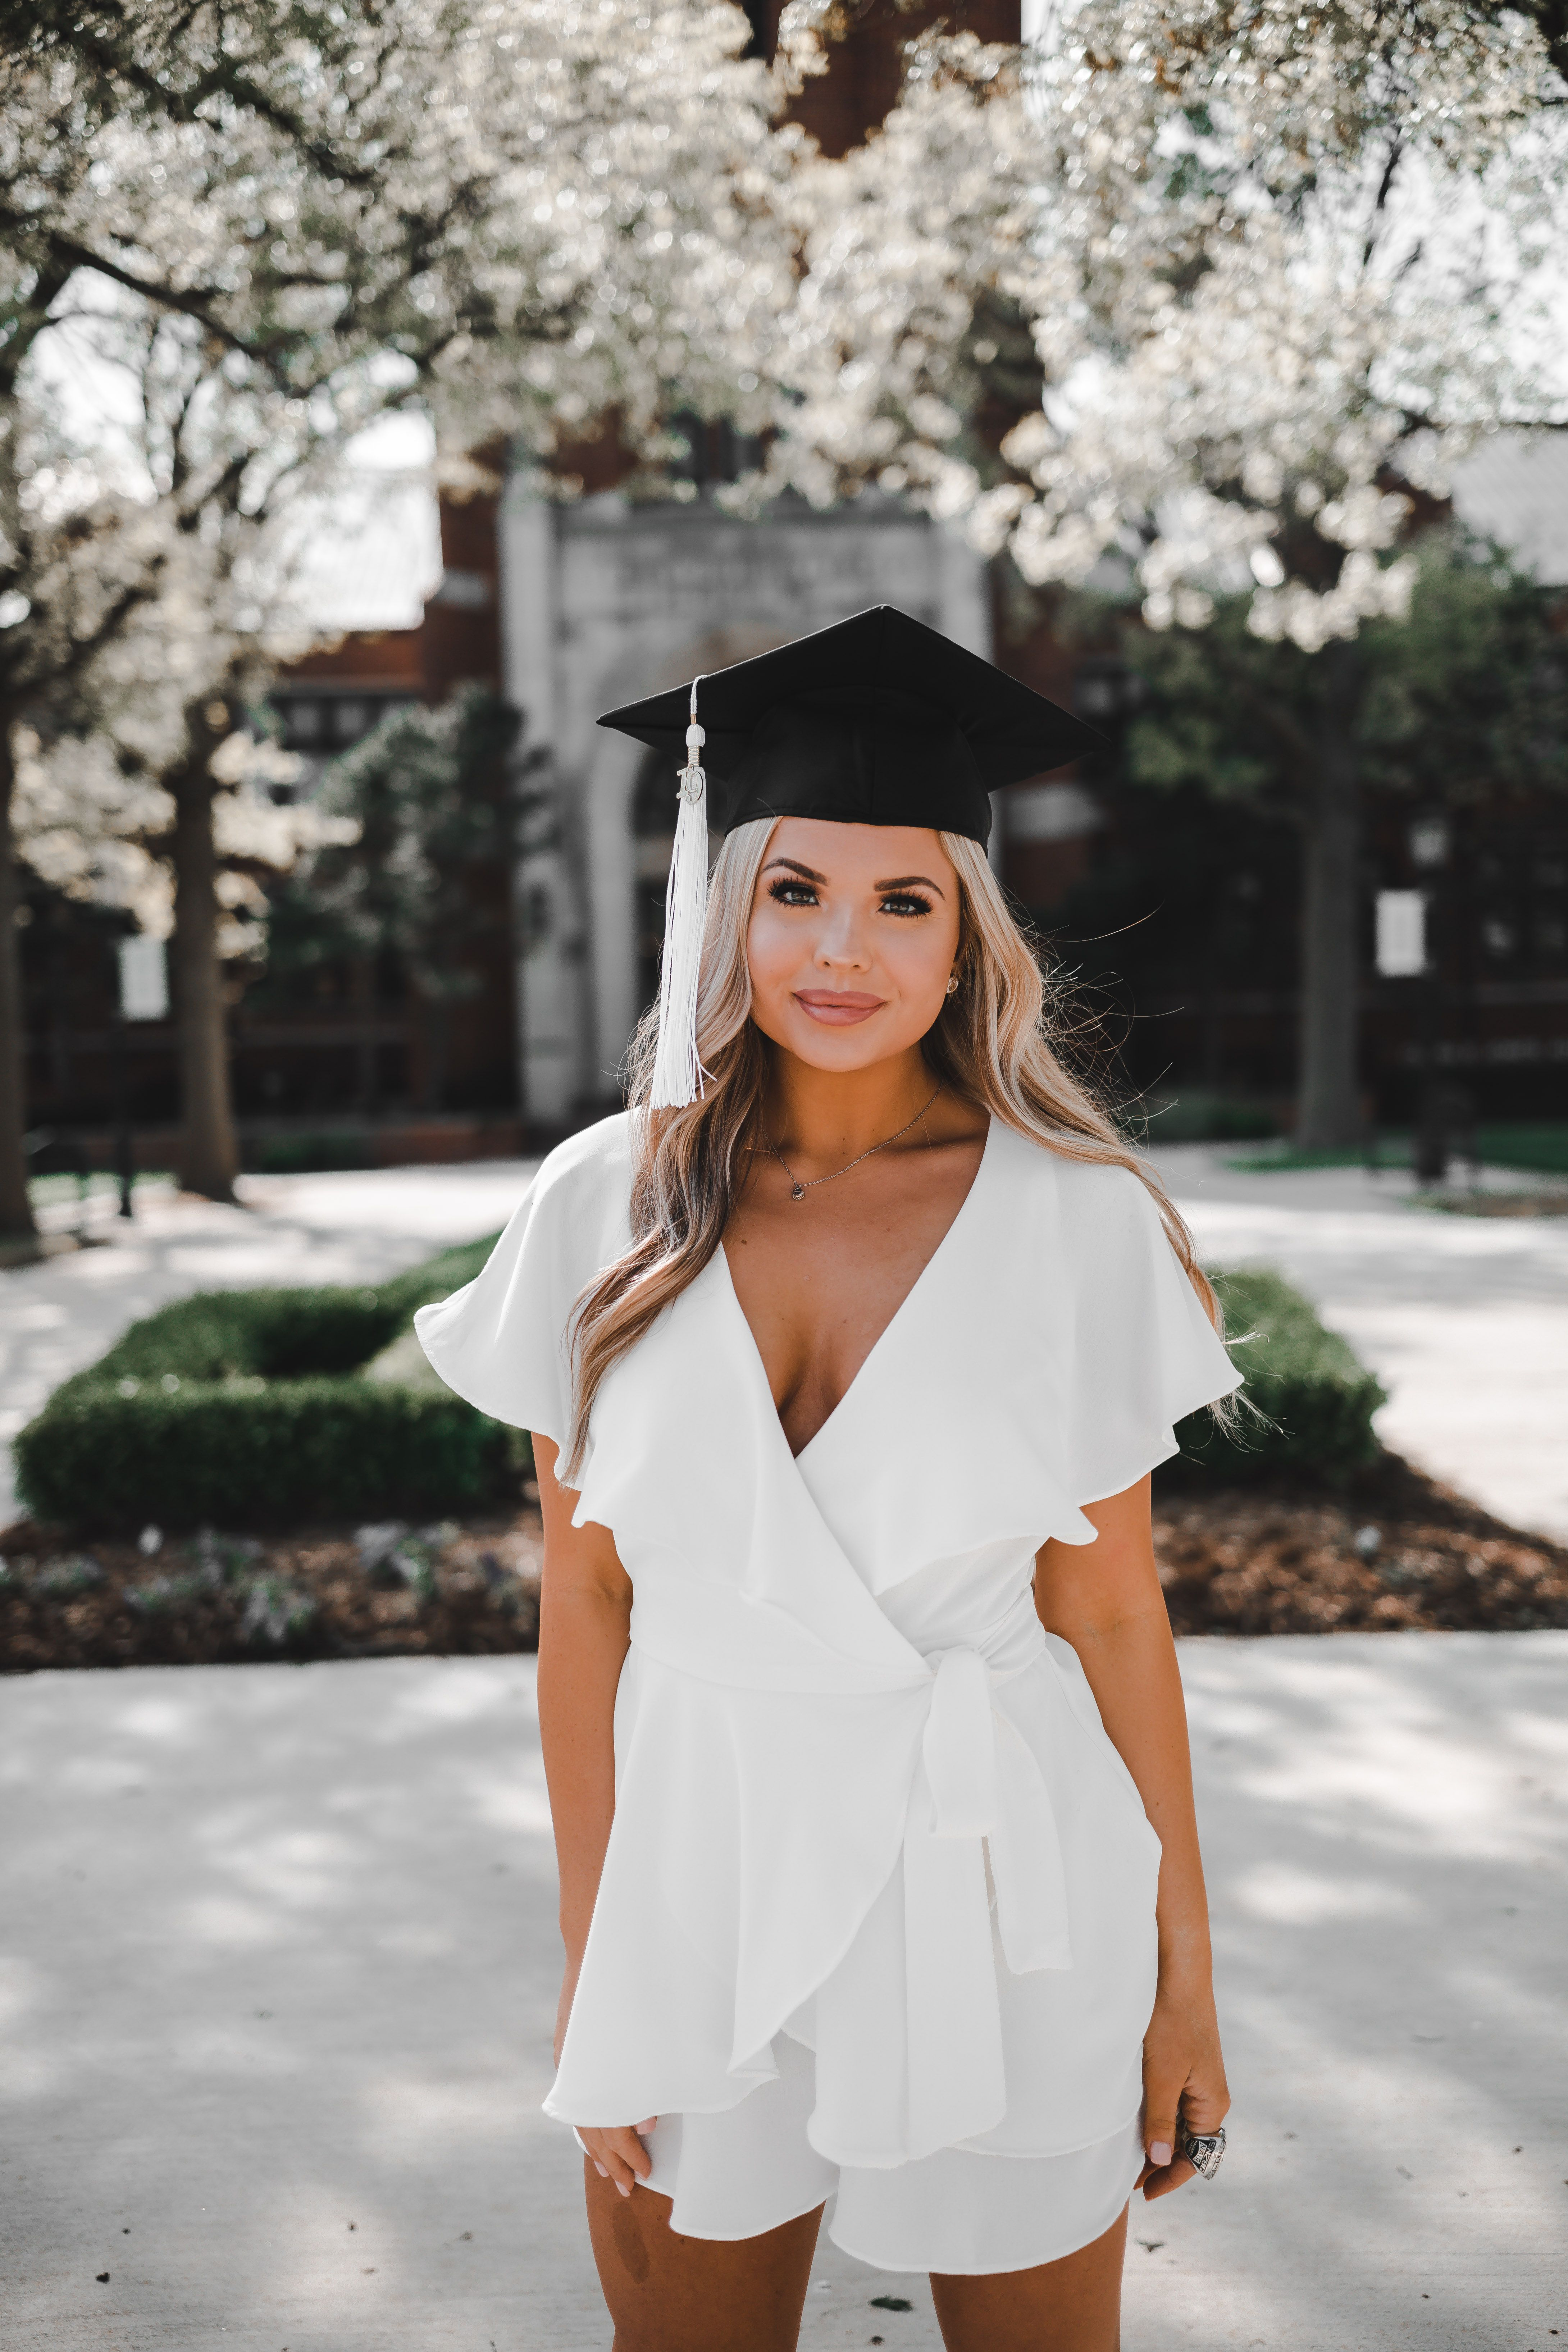 13 senior dress Graduation ideas